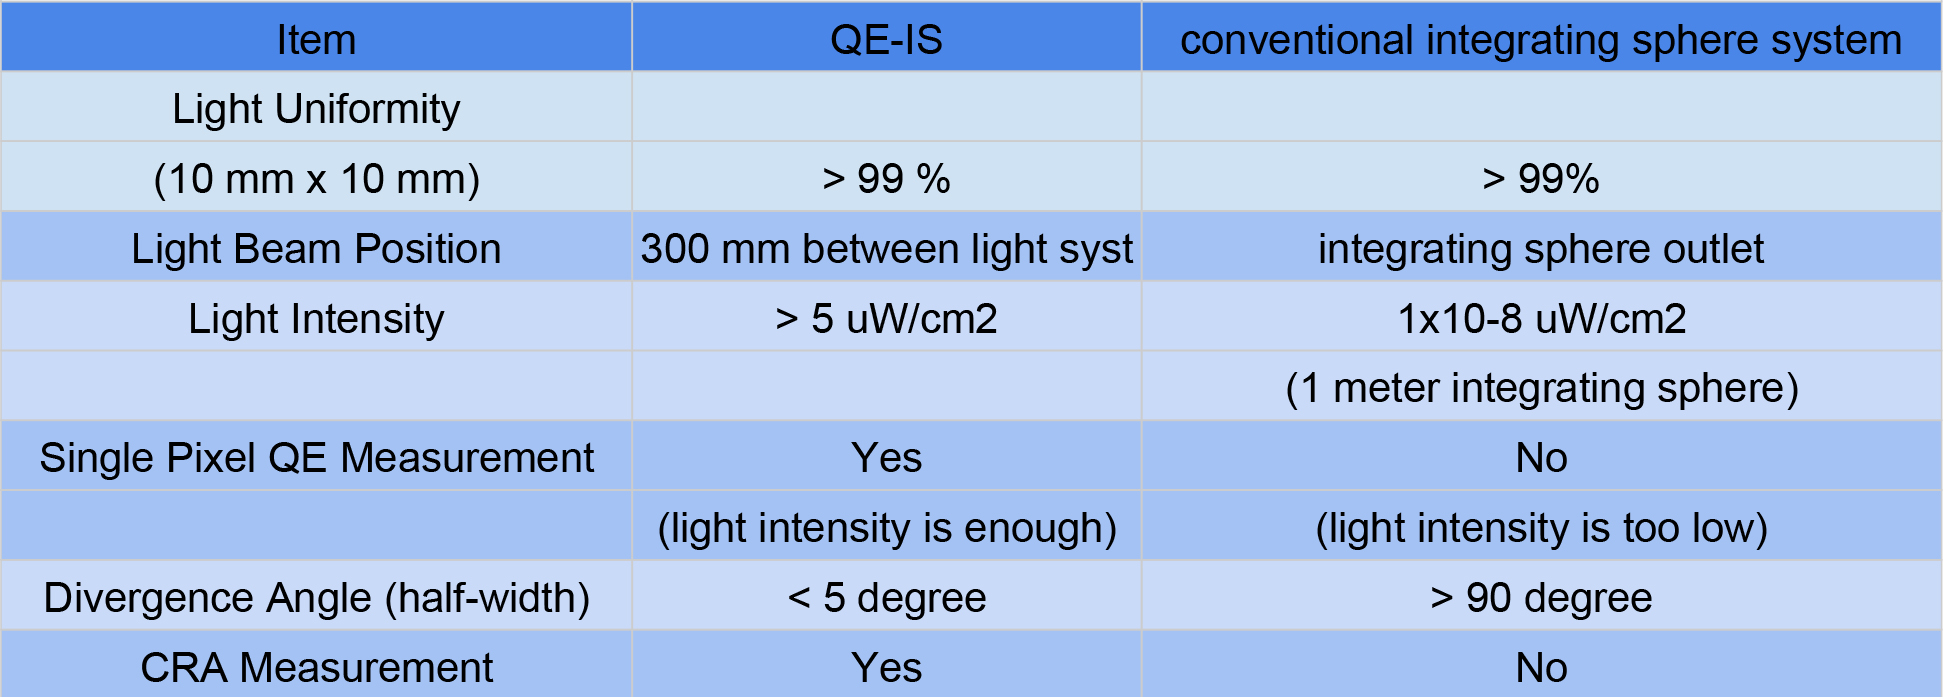 Comparison table:QE-IS with conventional integrating sphere system